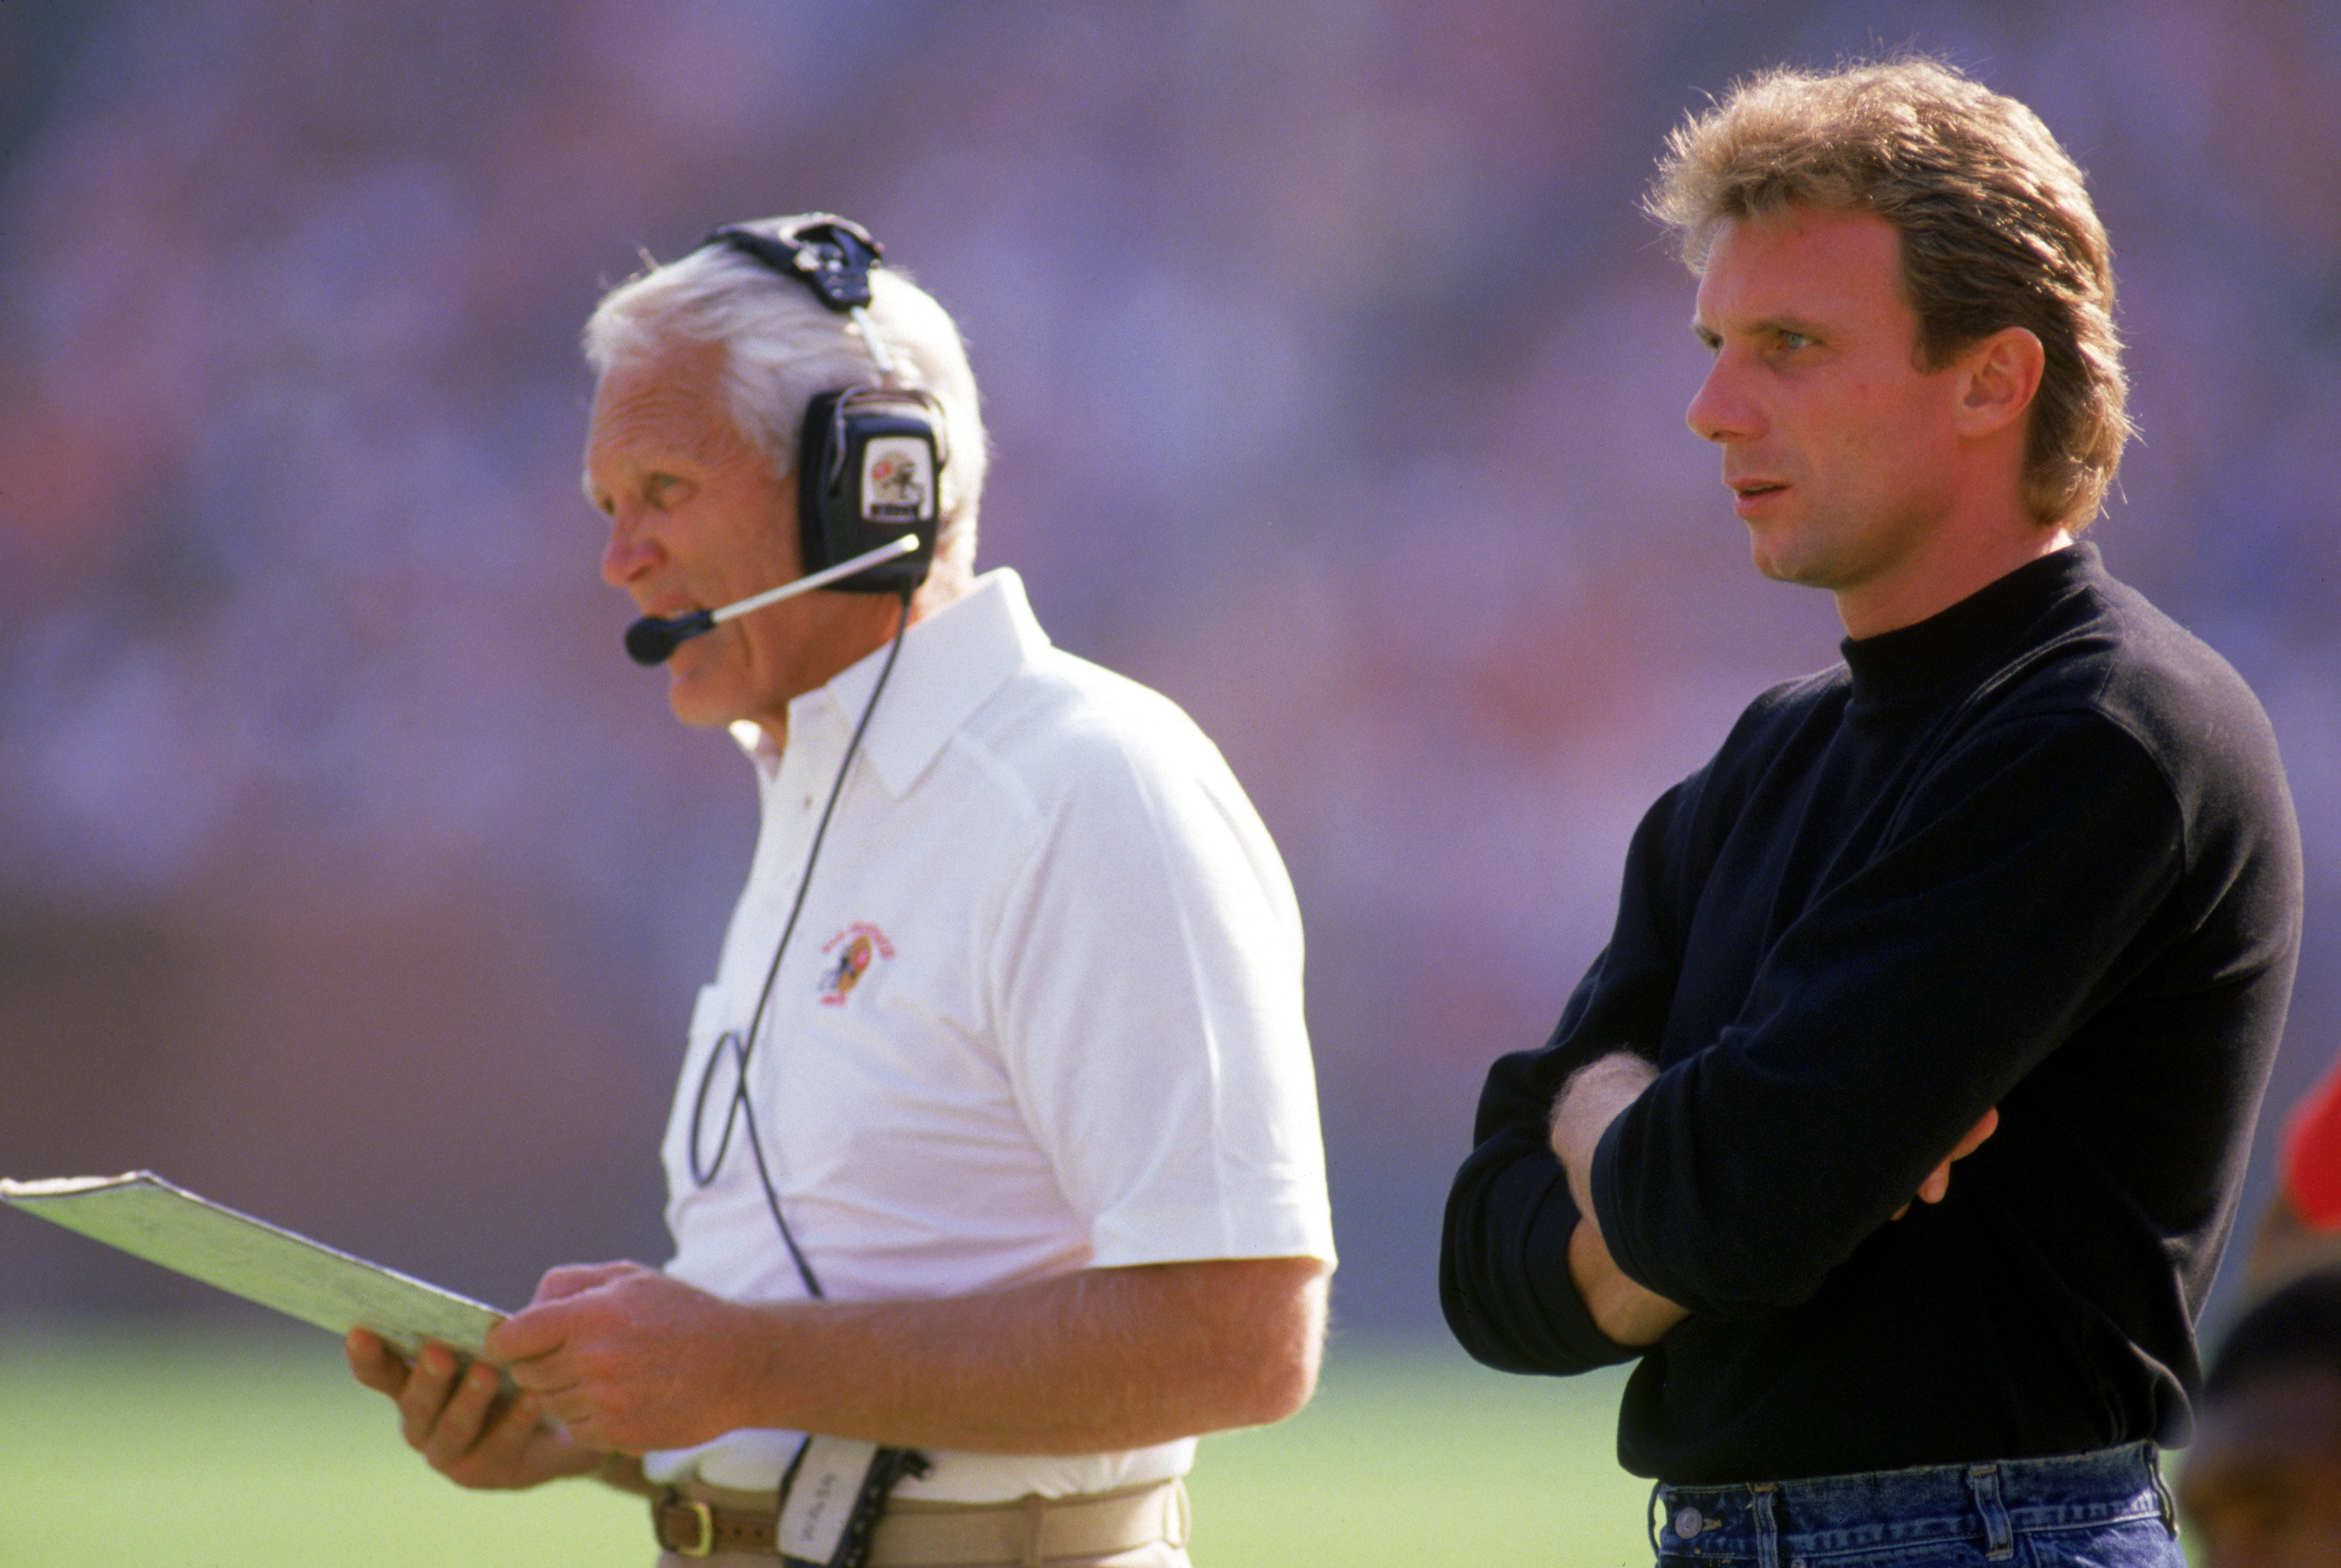 SAN FRANCISCO - OCTOBER 30: Head coach Bill Walsh and injured quarterback Joe Montana #16 of the San Francisco 49ers looks on from the sideline during a game against the Minnesota Vikings at Candlestick Park on October 30, 1988 in San Francisco, Californi